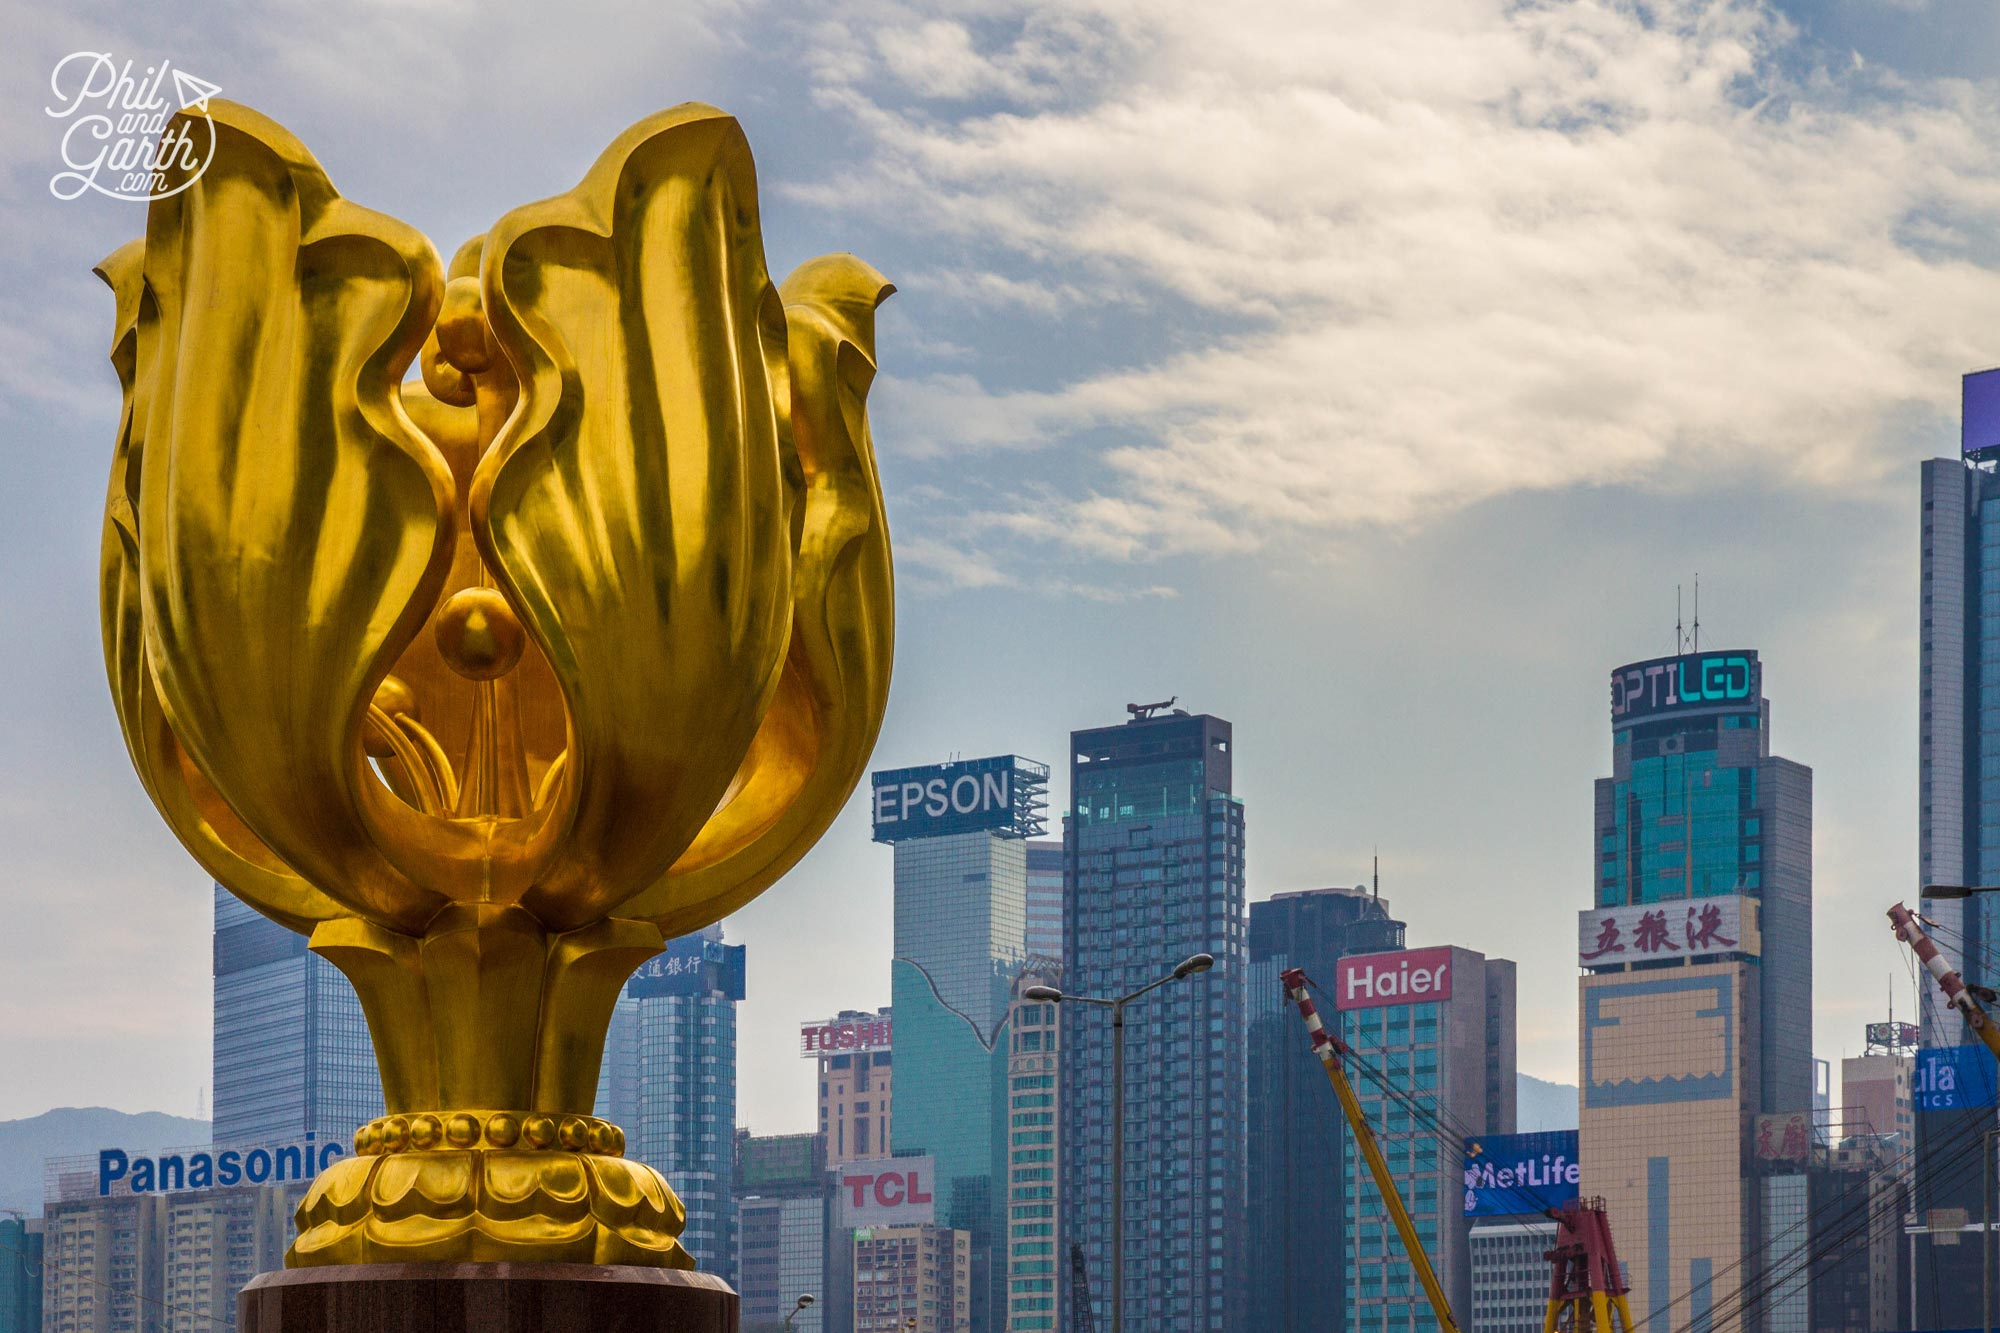 The 'Forever Blooming Bauhinia' sculpture on Golden Bauhinia Square